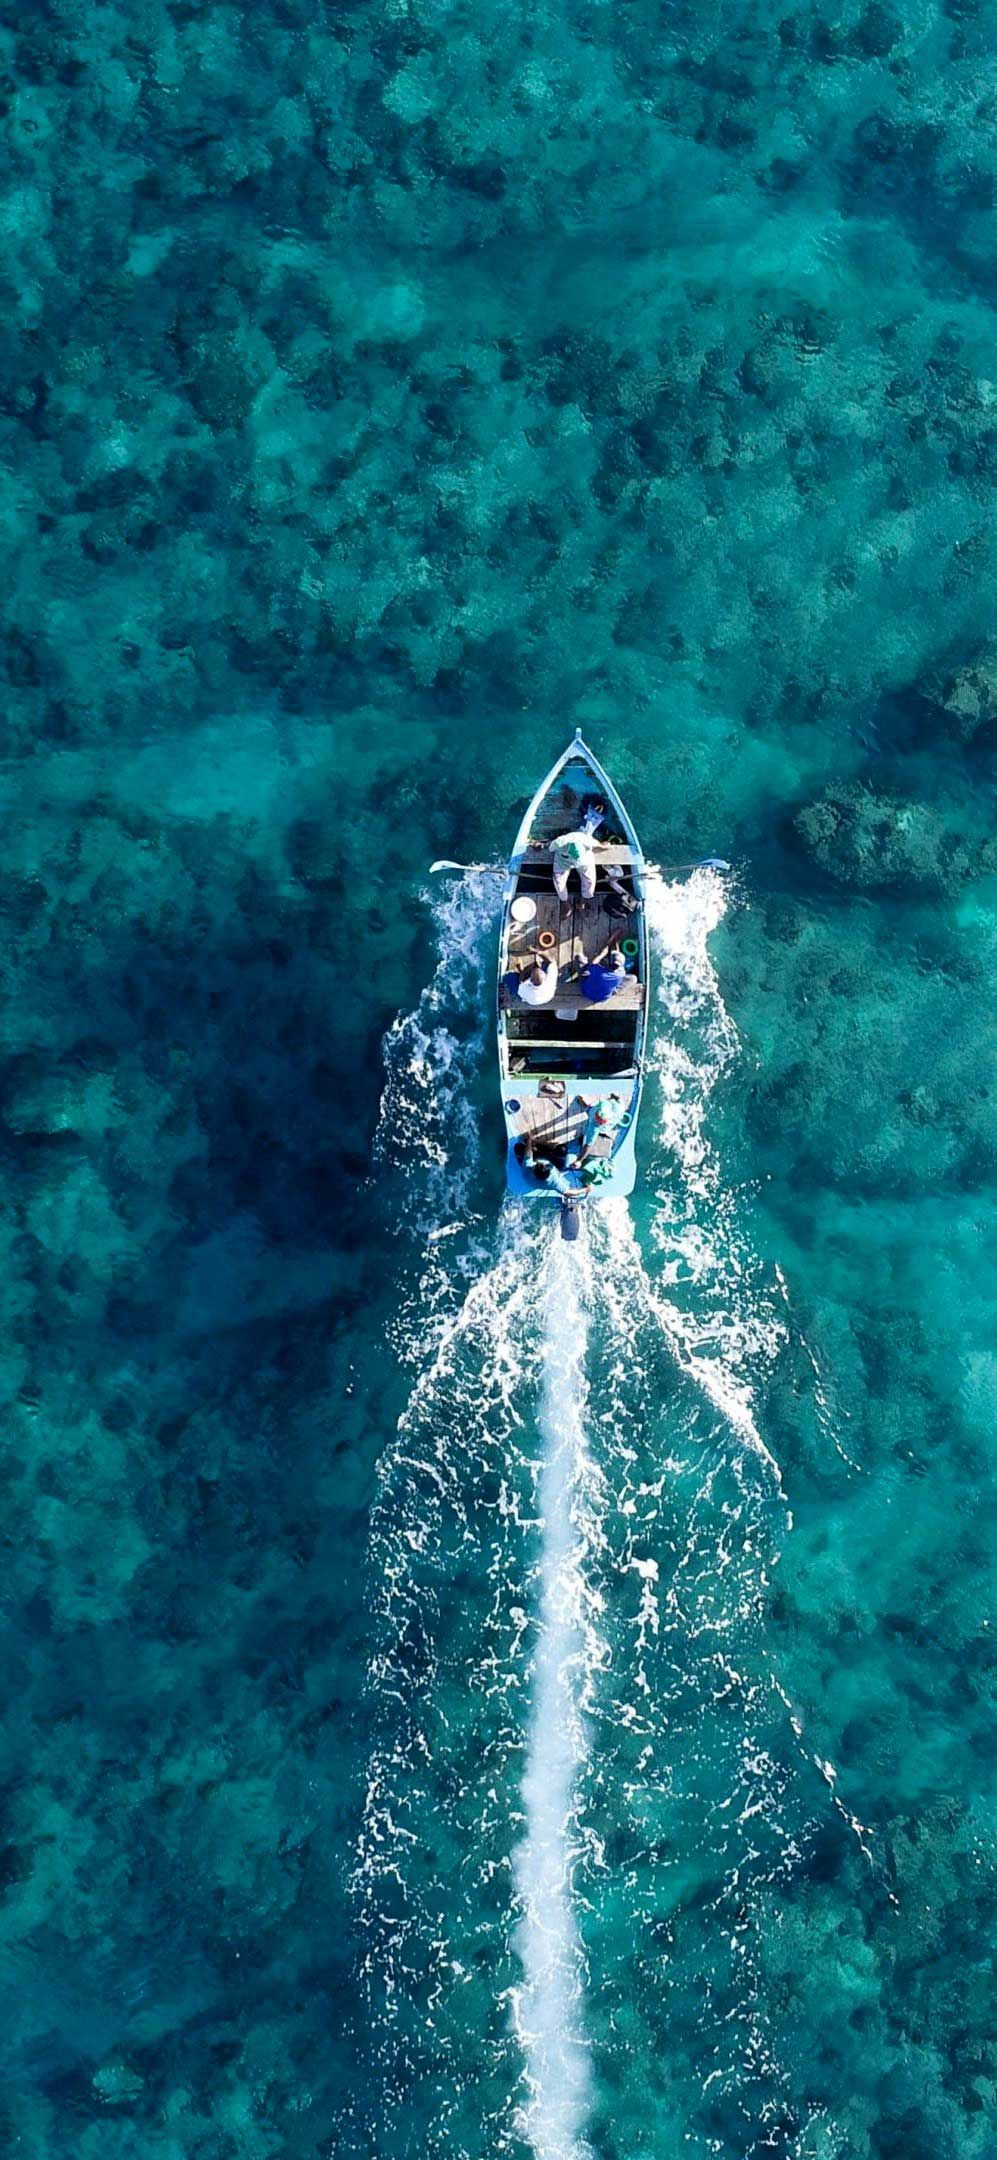 Iphone Wallpaper Boat Holiday Sea Aerial View Hd Aerial View Iphone Wallpaper Wallpaper Wallpaper coast aerial view sea boat